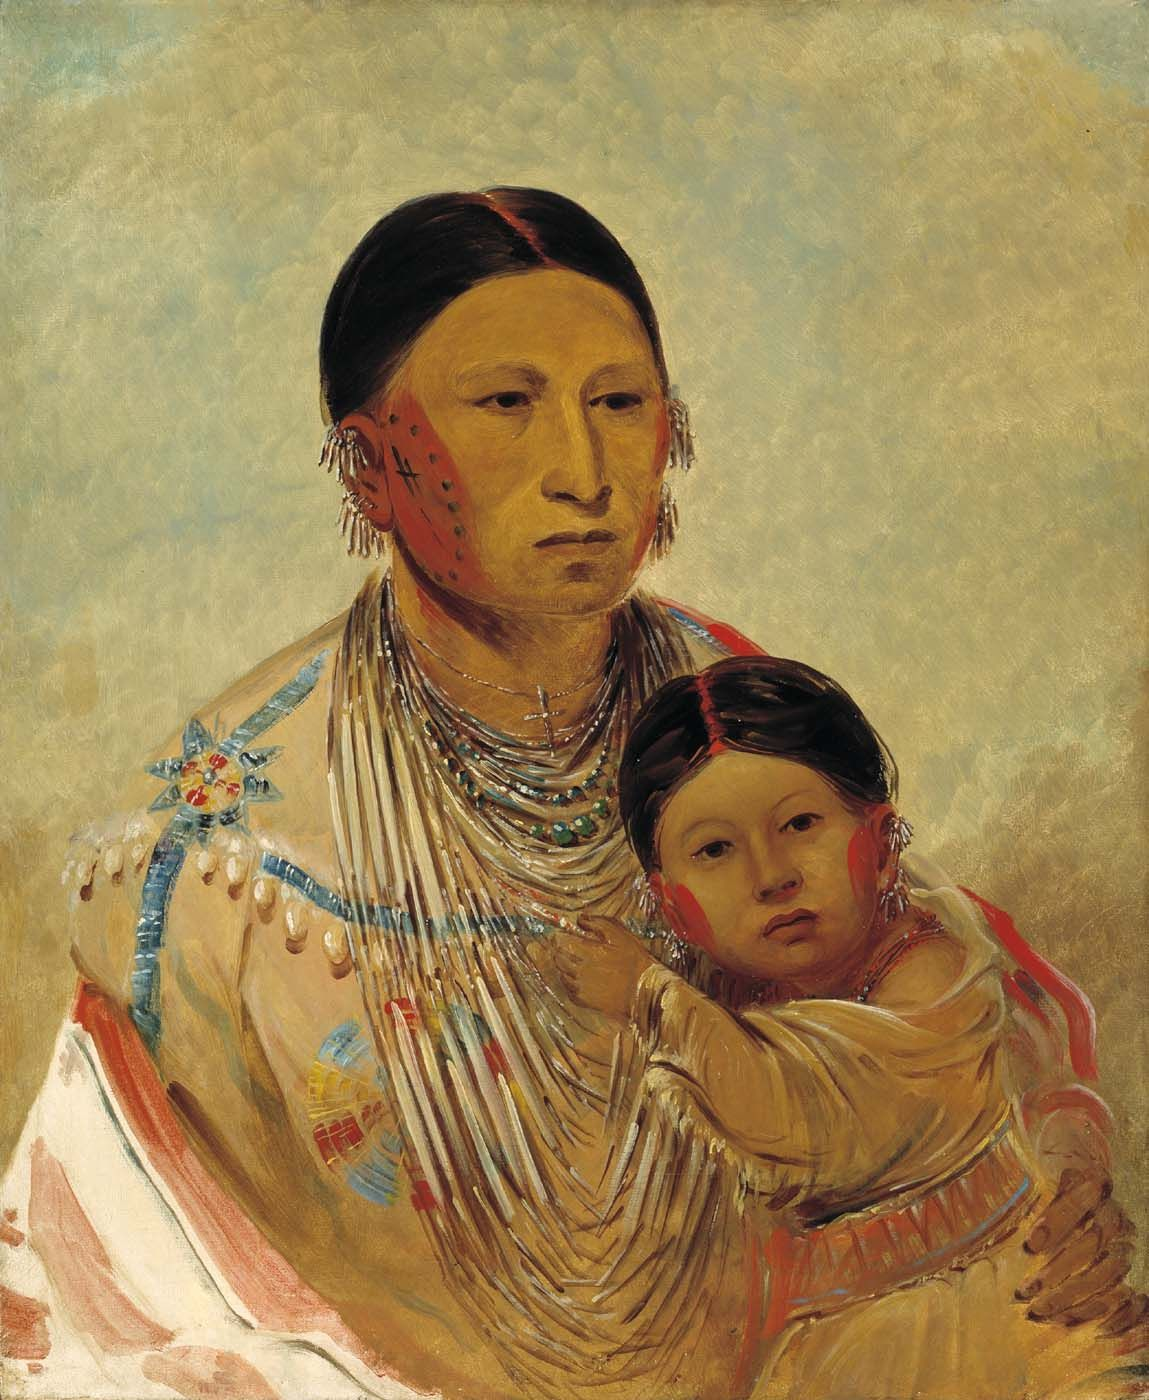 Ru-ton-ye-wee-ma, Strutting Pigeon, Wife of White Cloud    Painted by George Catlin in 1844